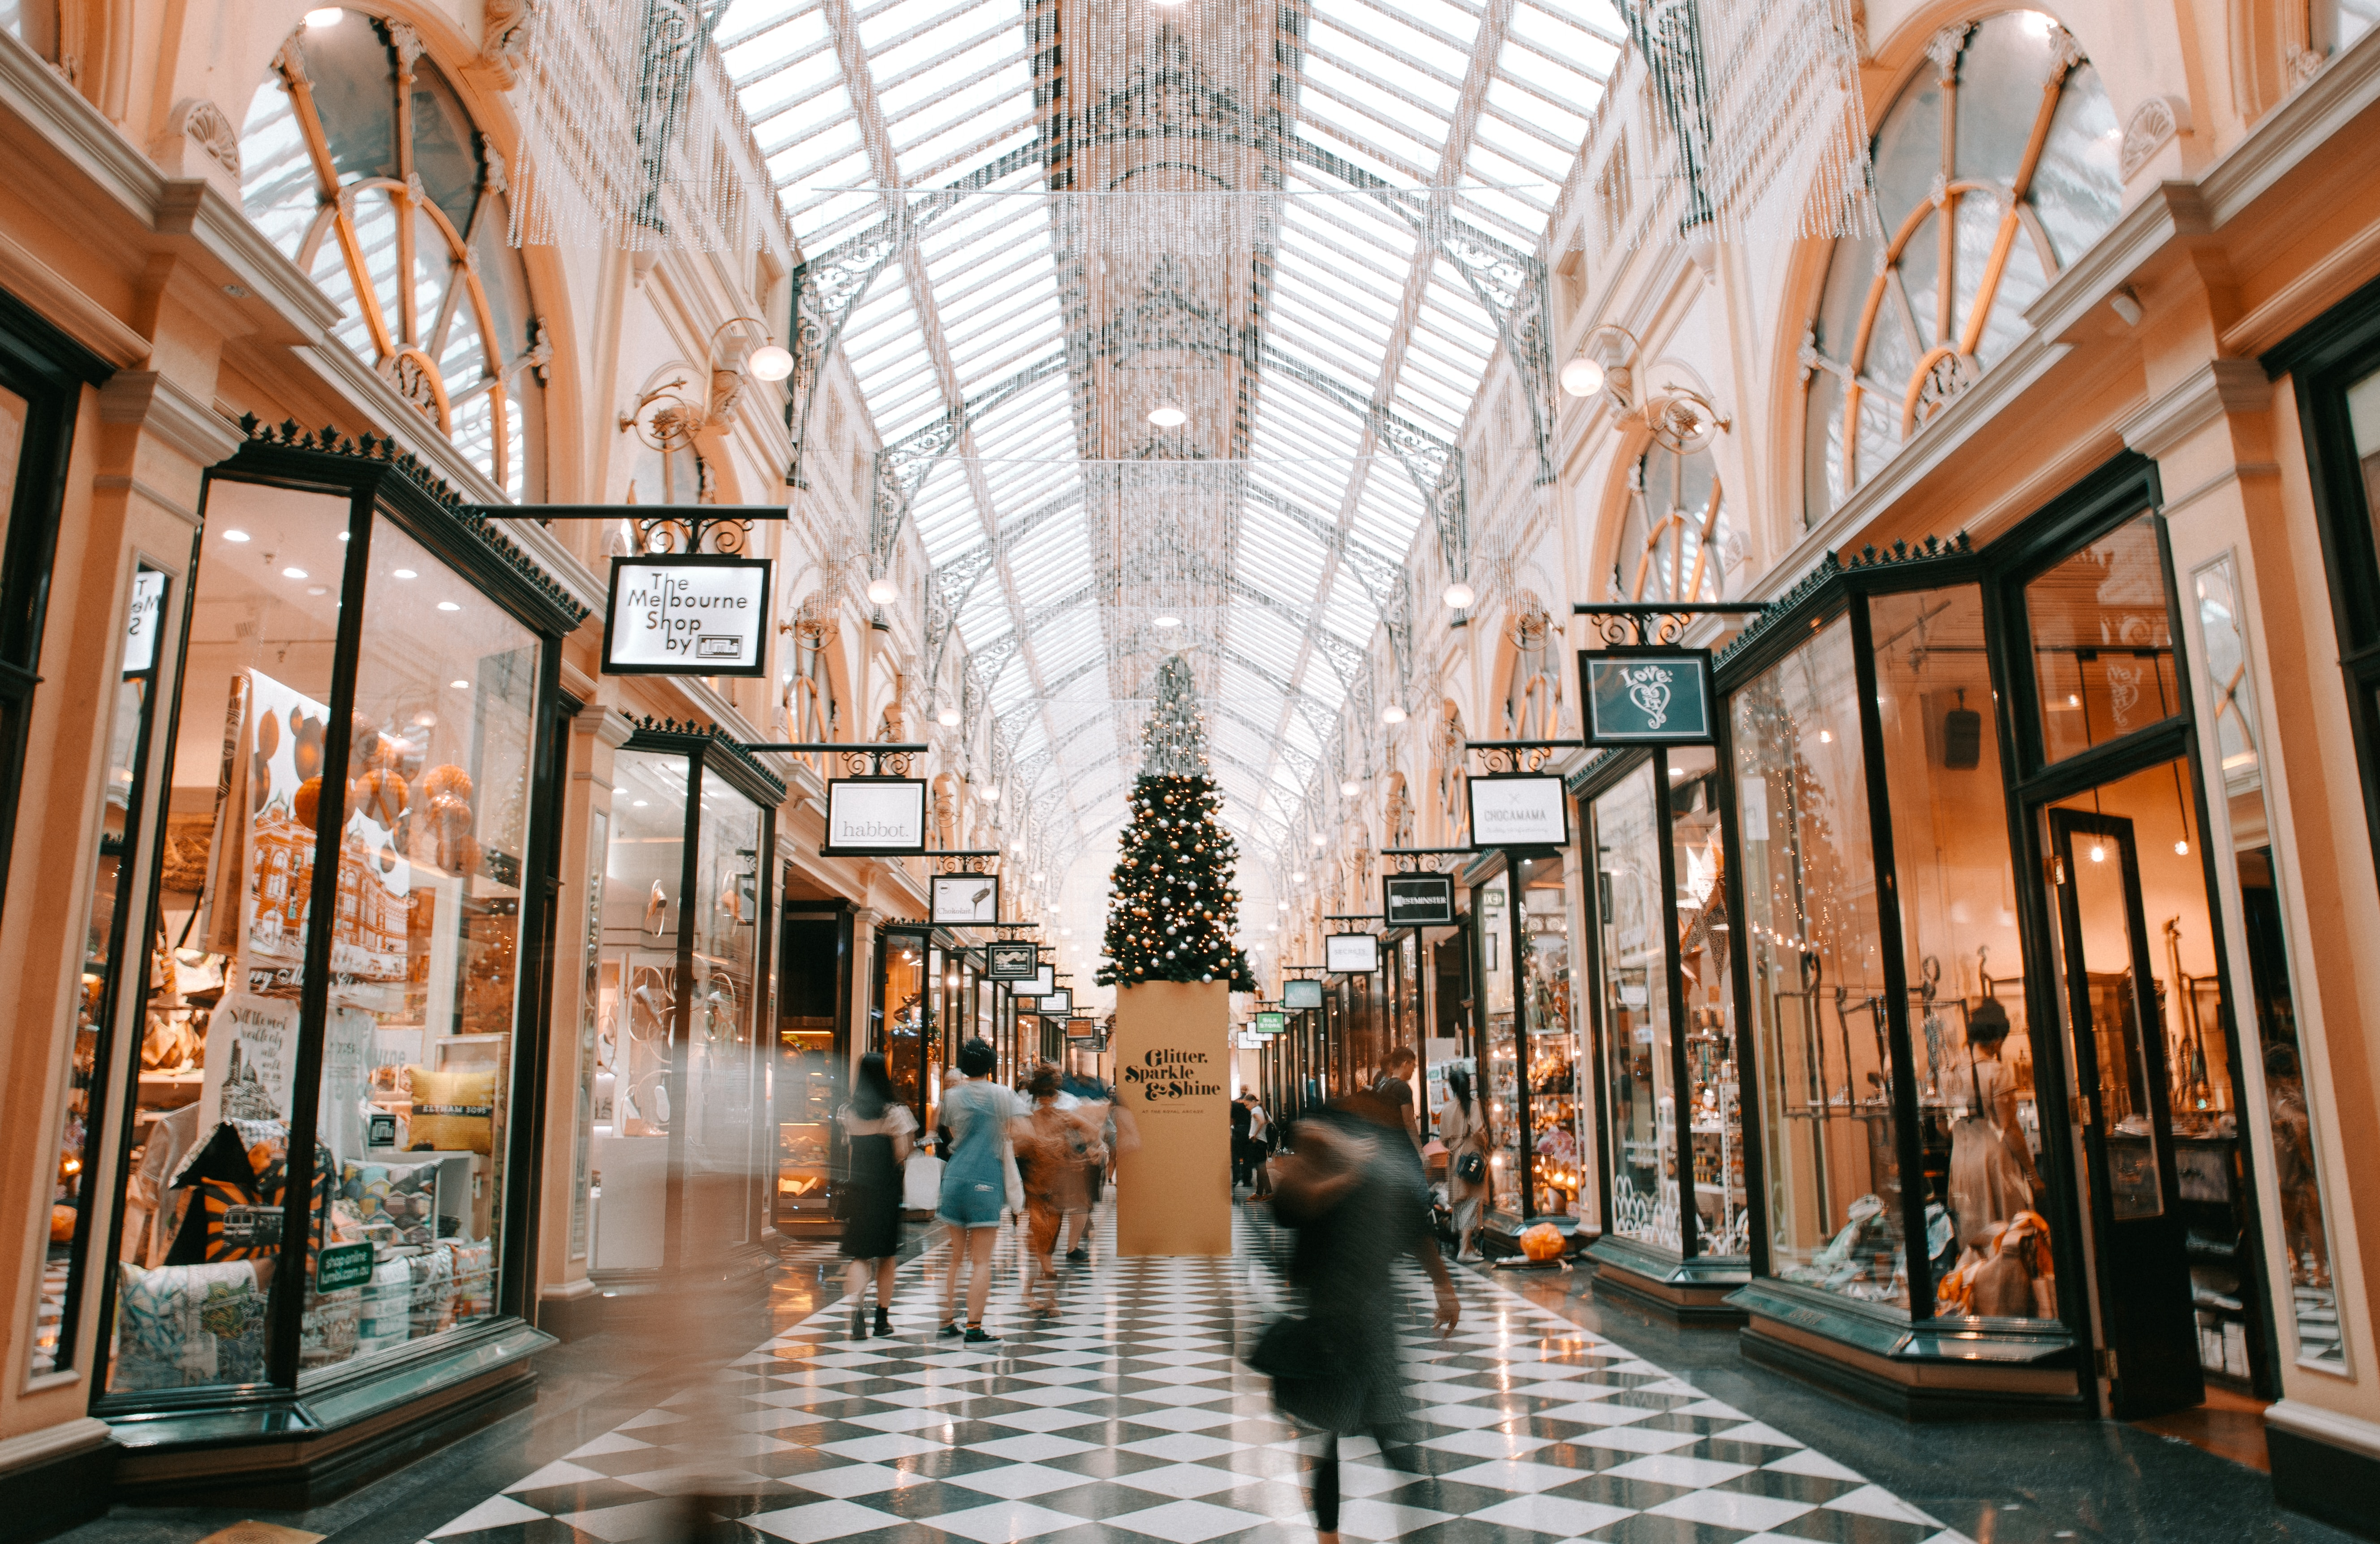 2018 Holiday Retail Survey Results and 2019 Expectations